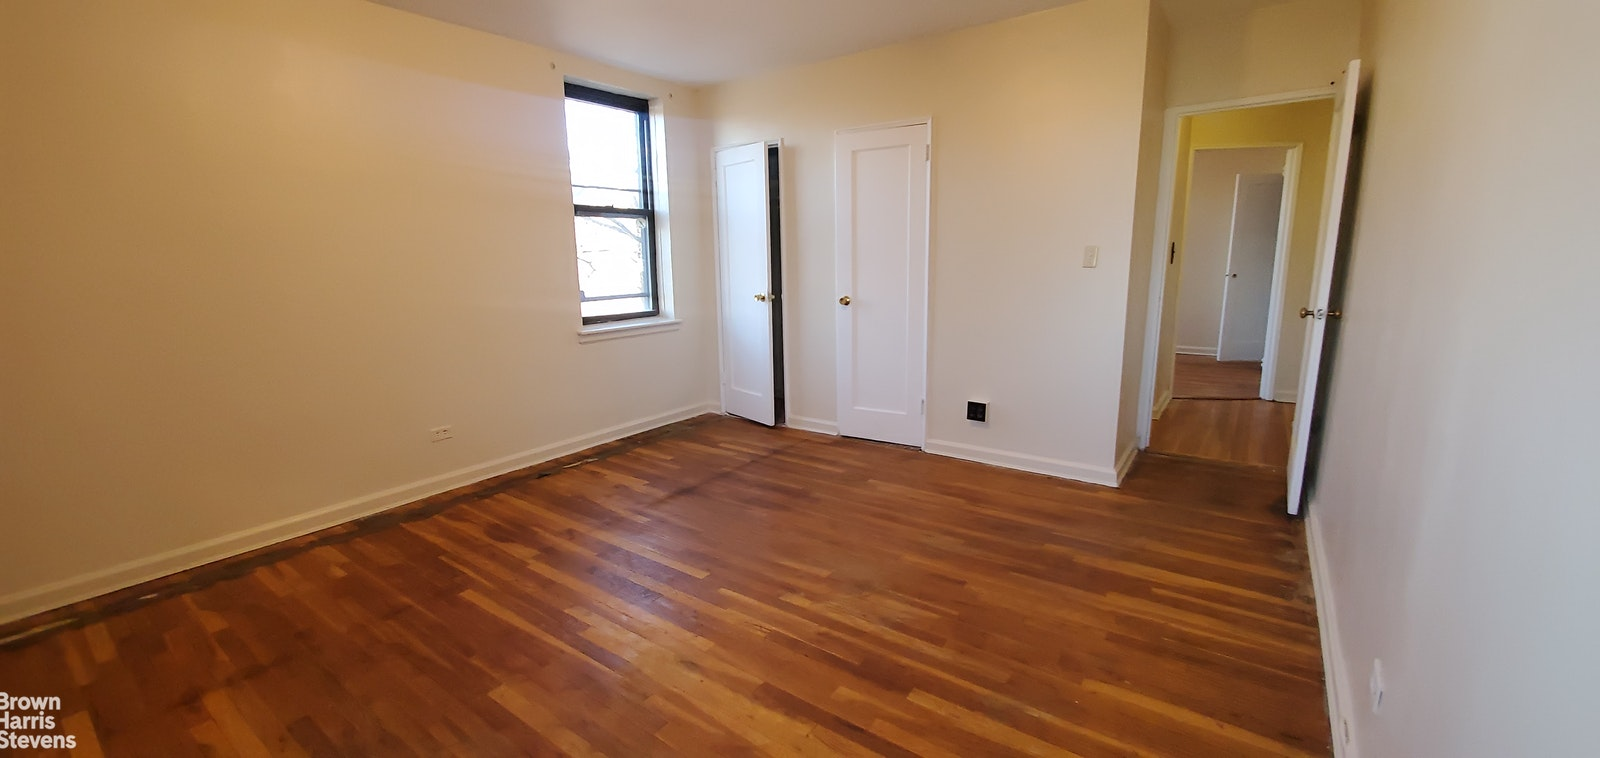 3555 KINGS COLLEGE PL 3G, Norwood, $185,000, Web #: 20507517